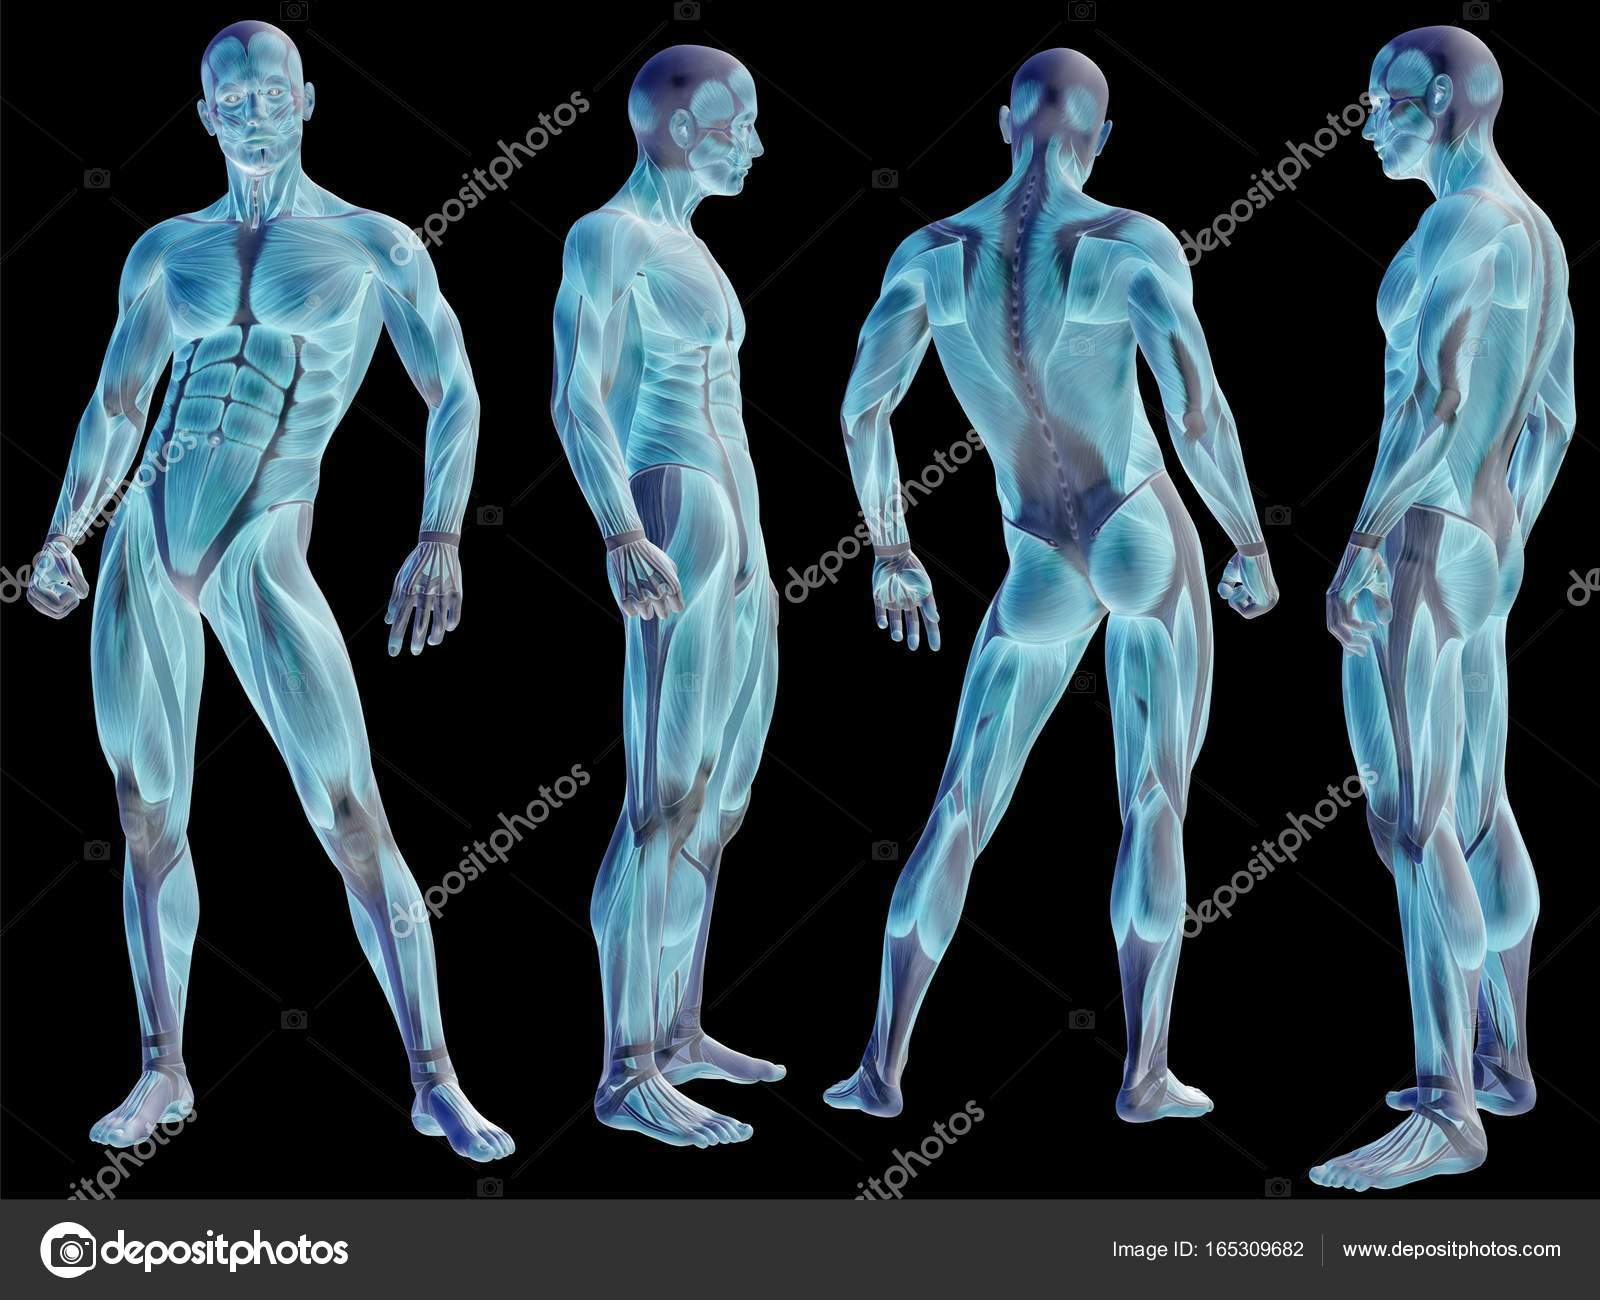 High Resolution Concept Or Conceptual Human Or Man 3d Anatomy Body